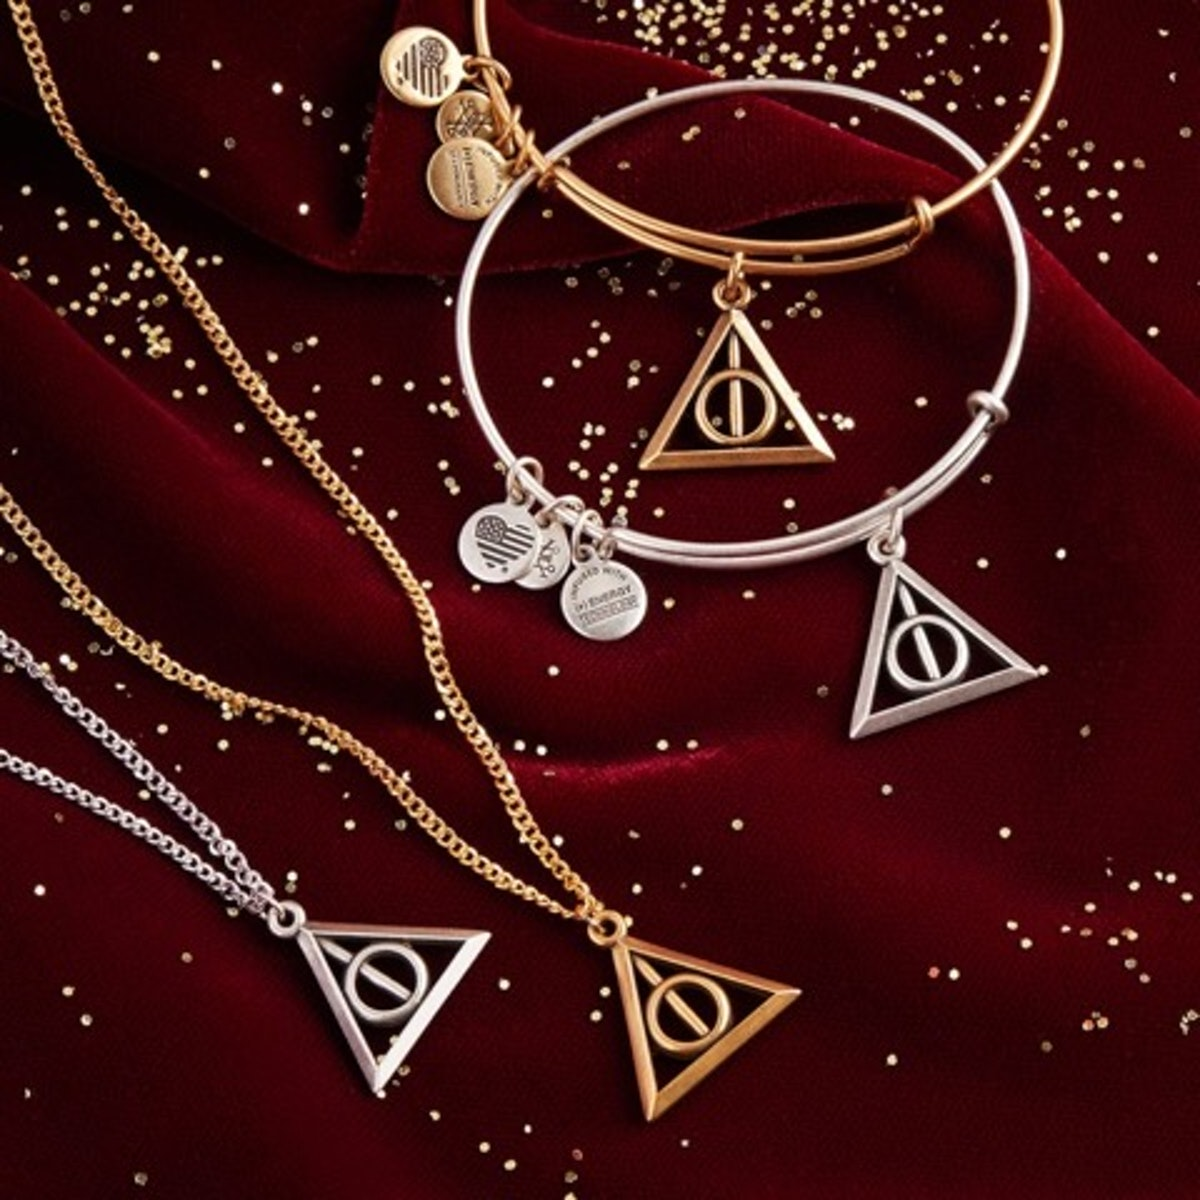 15 Valentine's Day Gifts For The Diehard Harry Potter Fan In Your Life